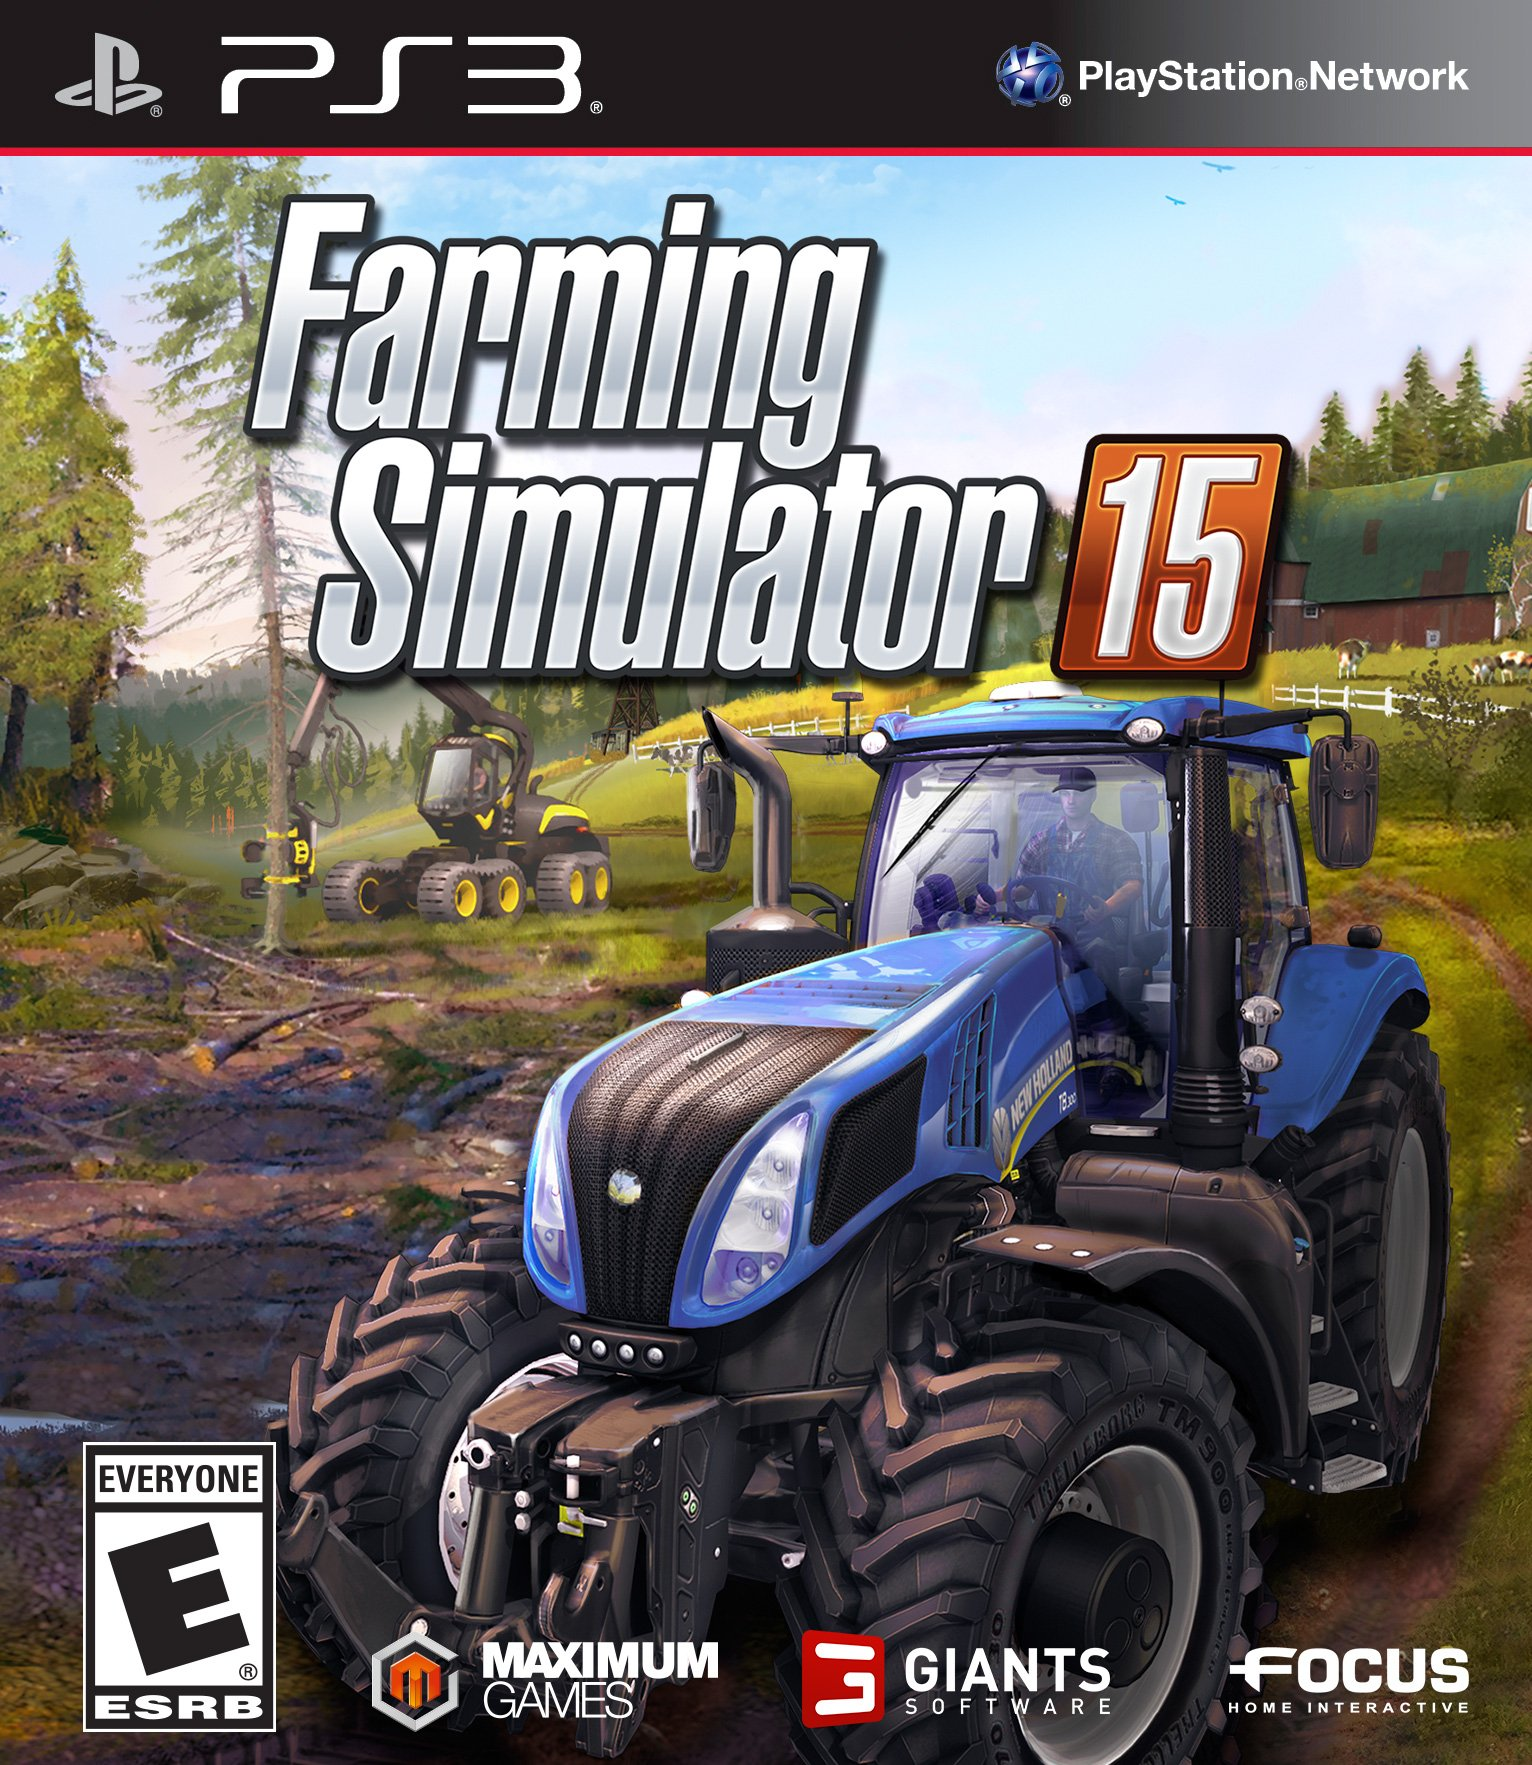 Farming Simulator 15 Release Date Xbox 360 PS3 Xbox One PS4